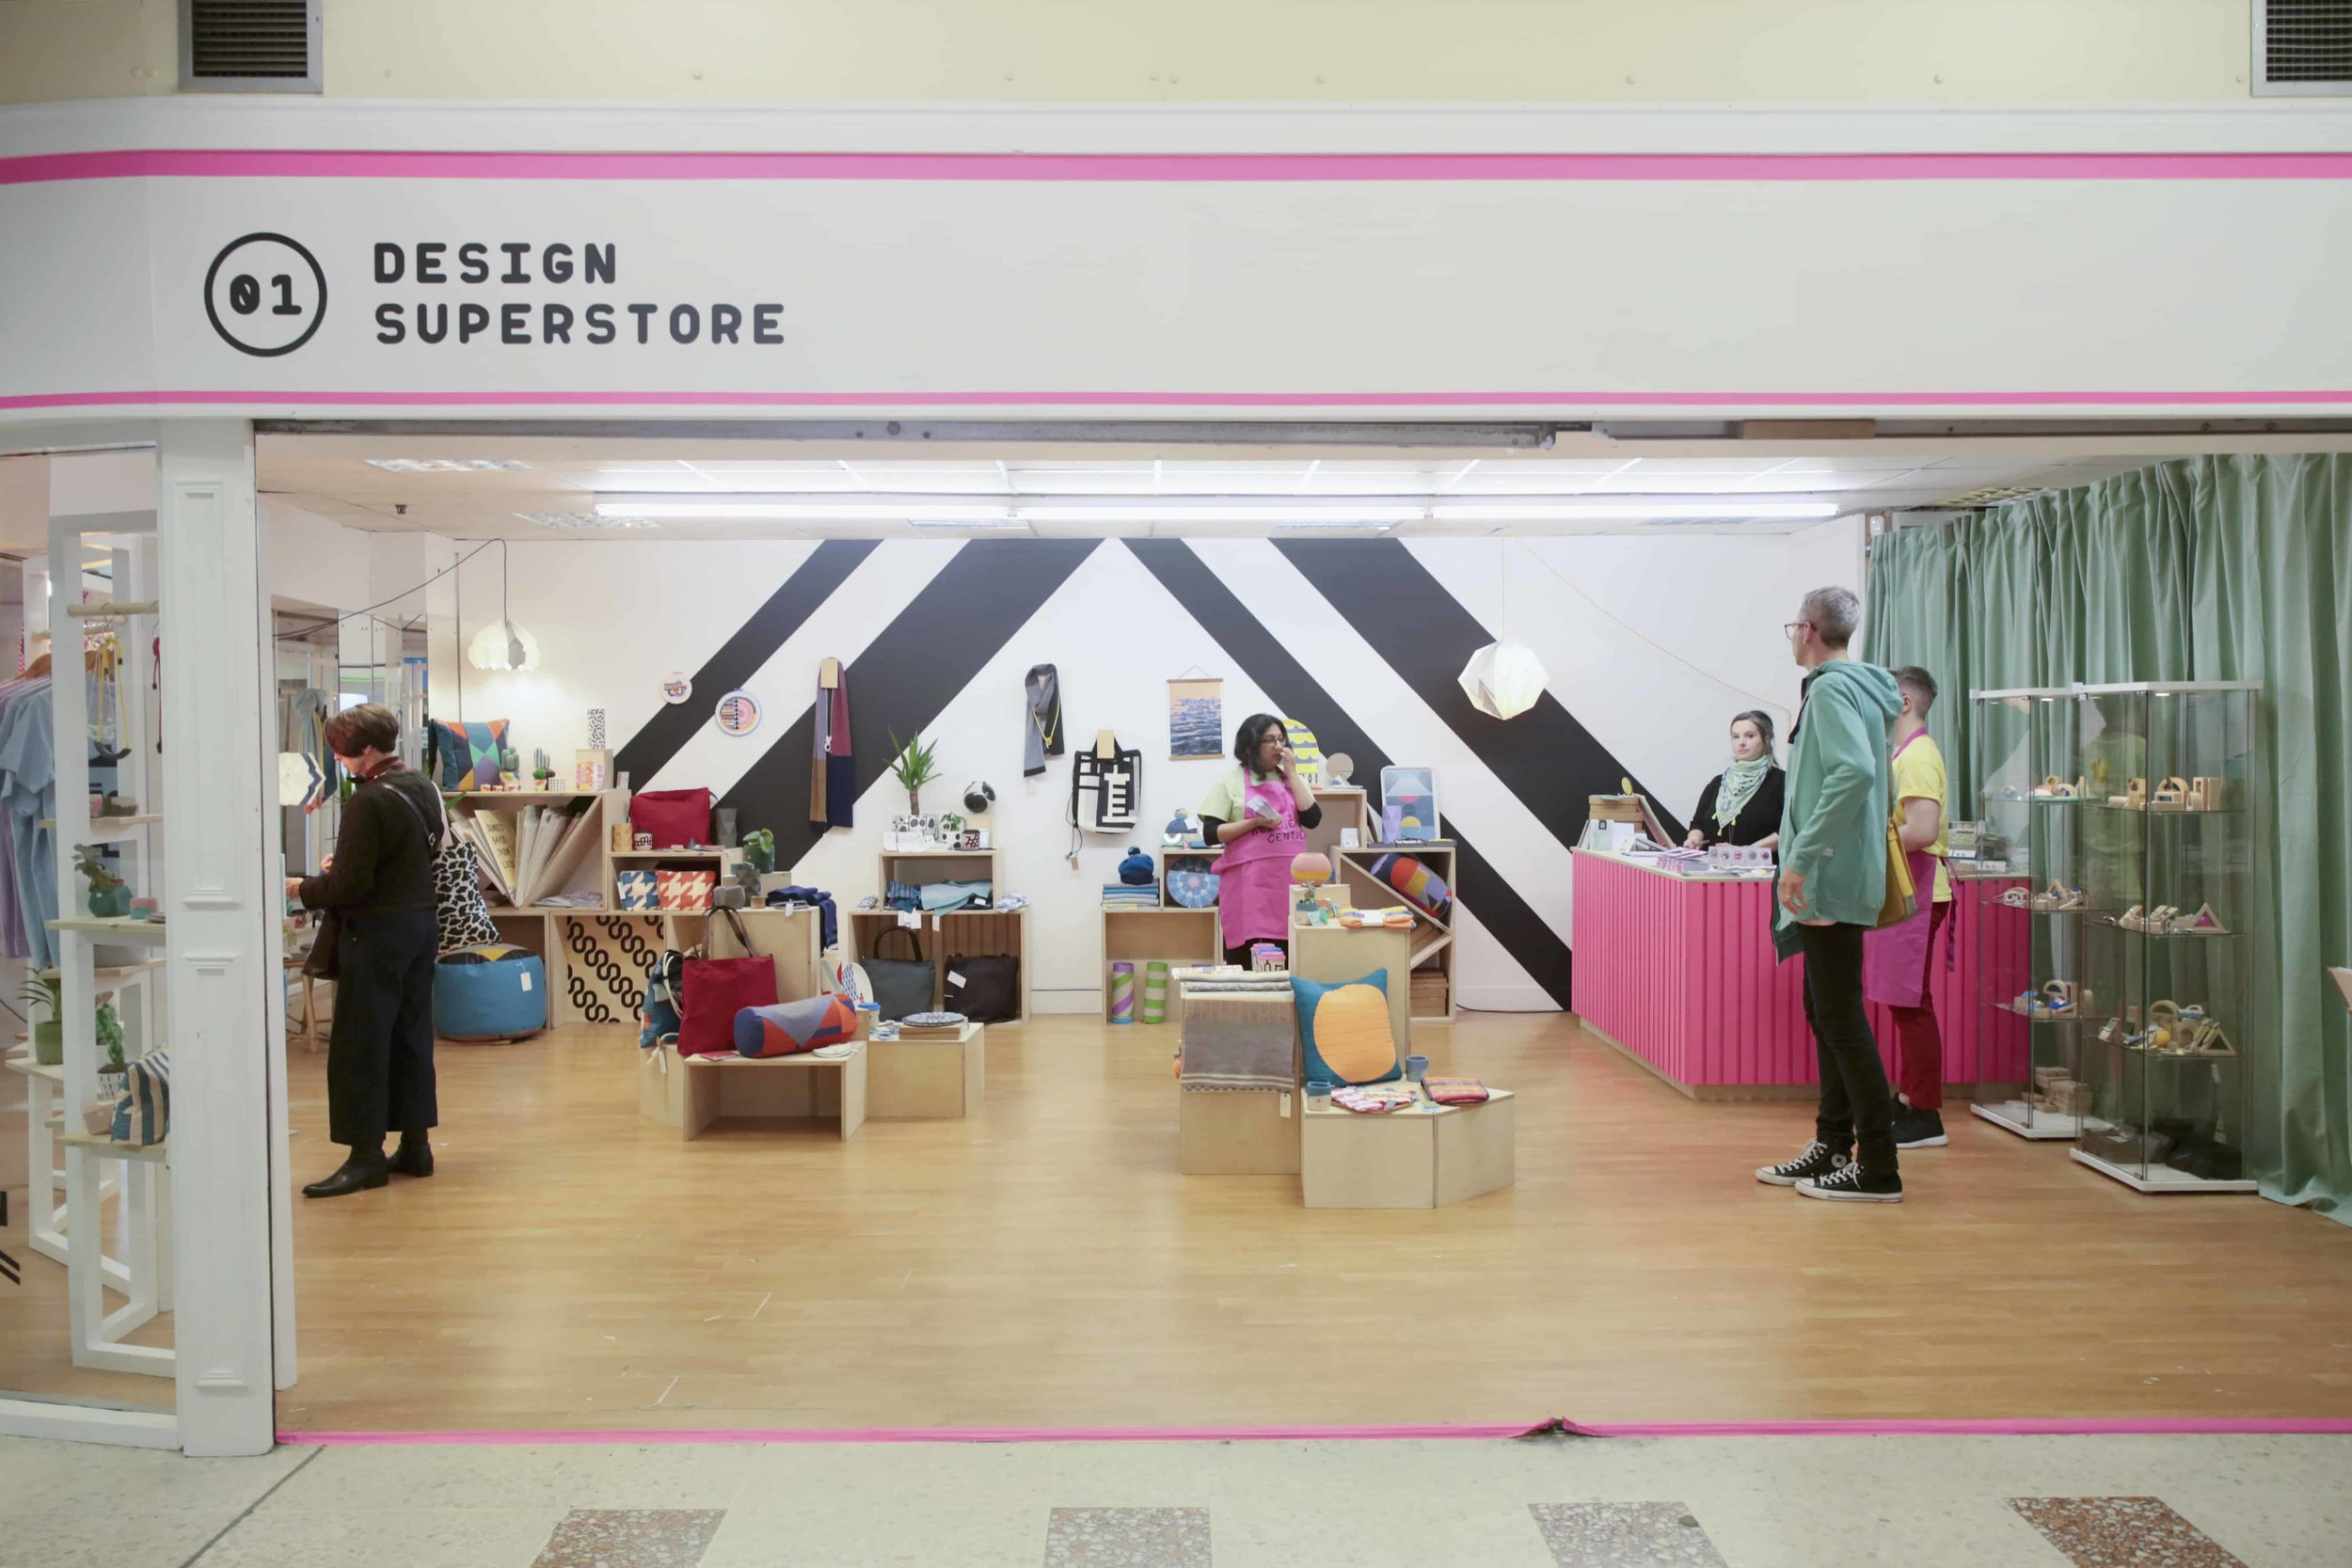 The Design Superstore, designed and installed as part of Dundee Design Festival 2019, at the Keiller Centre in Dundee. Designed in part with Tea Green Events, and Agency of None.